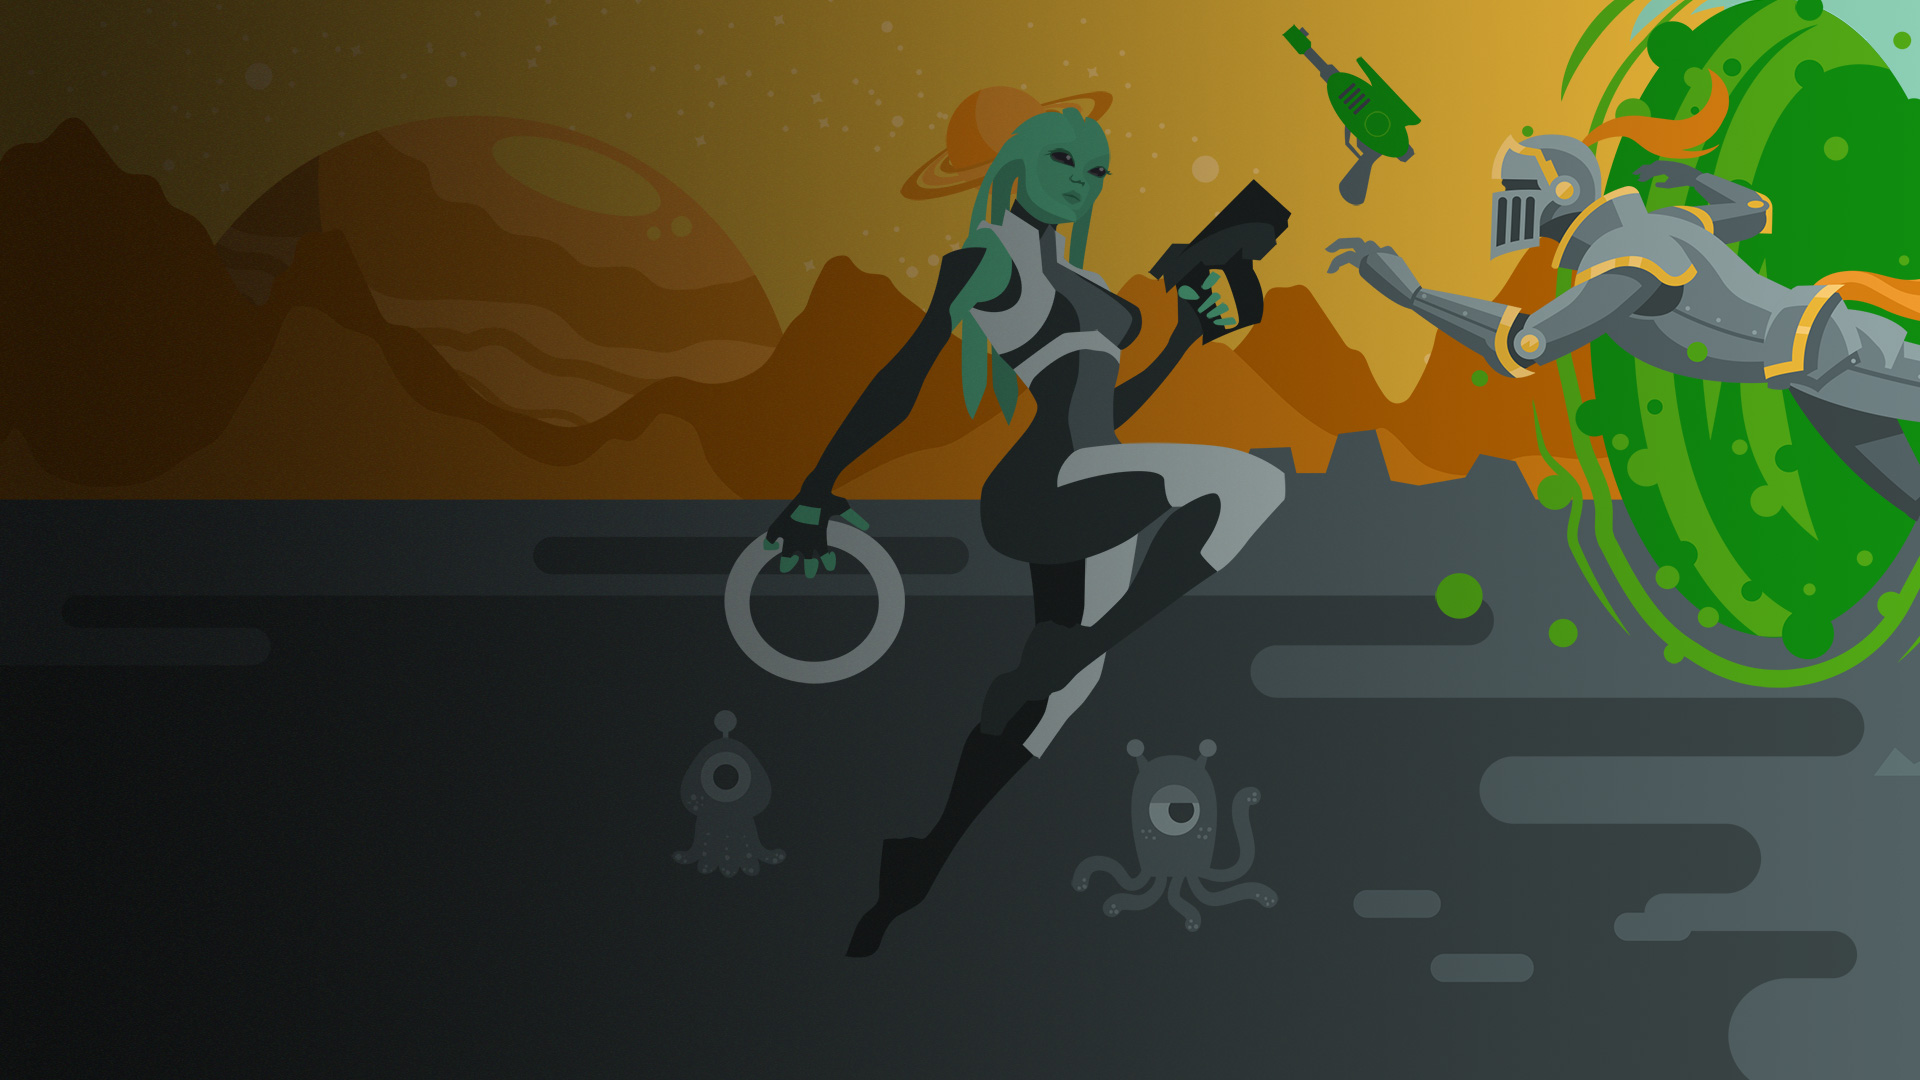 Image of a space Alien wielding a weapon, on a planet and a knight going through a green portal leaving a medieval setting.